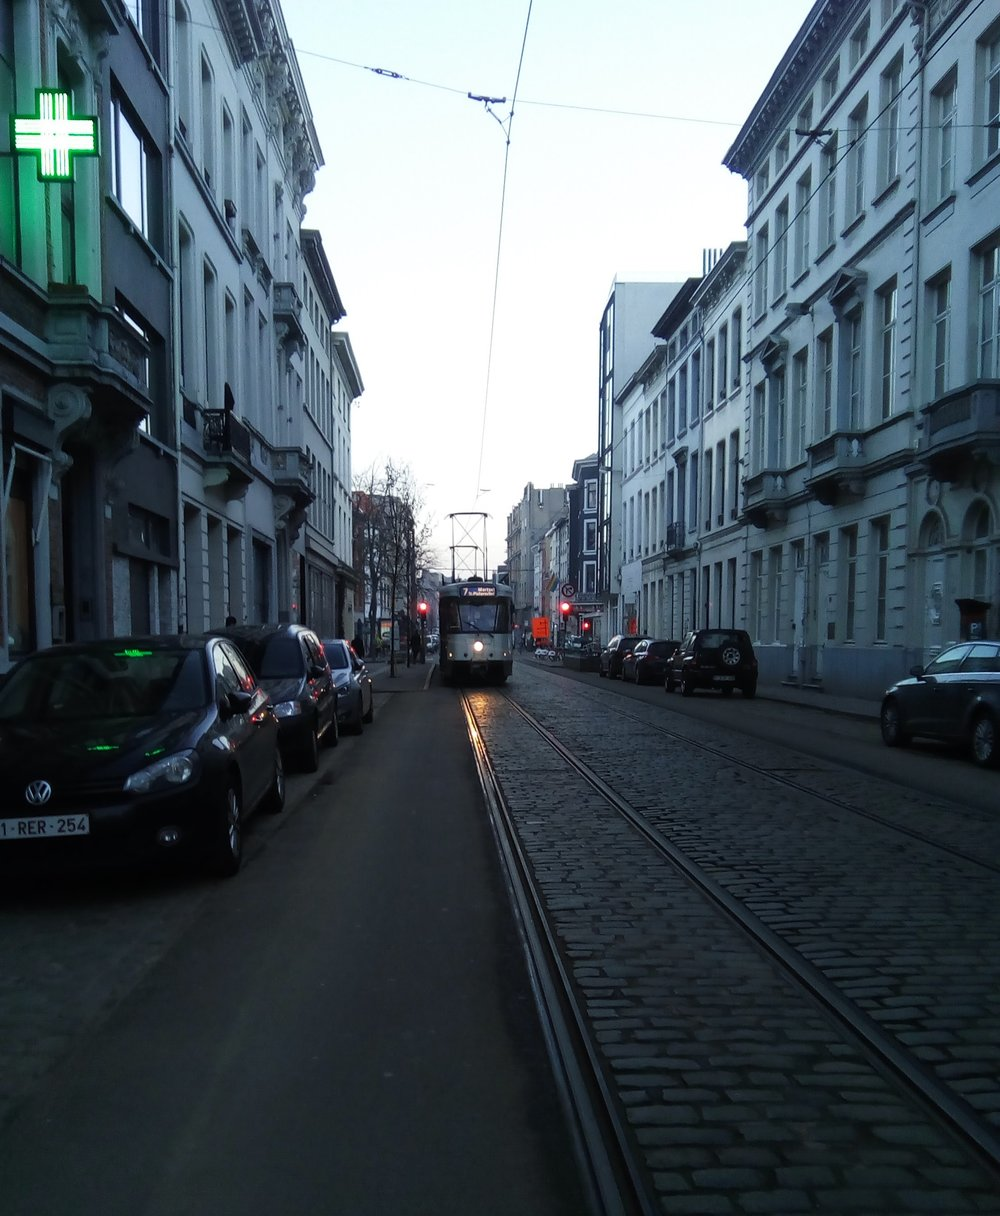 Trams and cobblestone streets